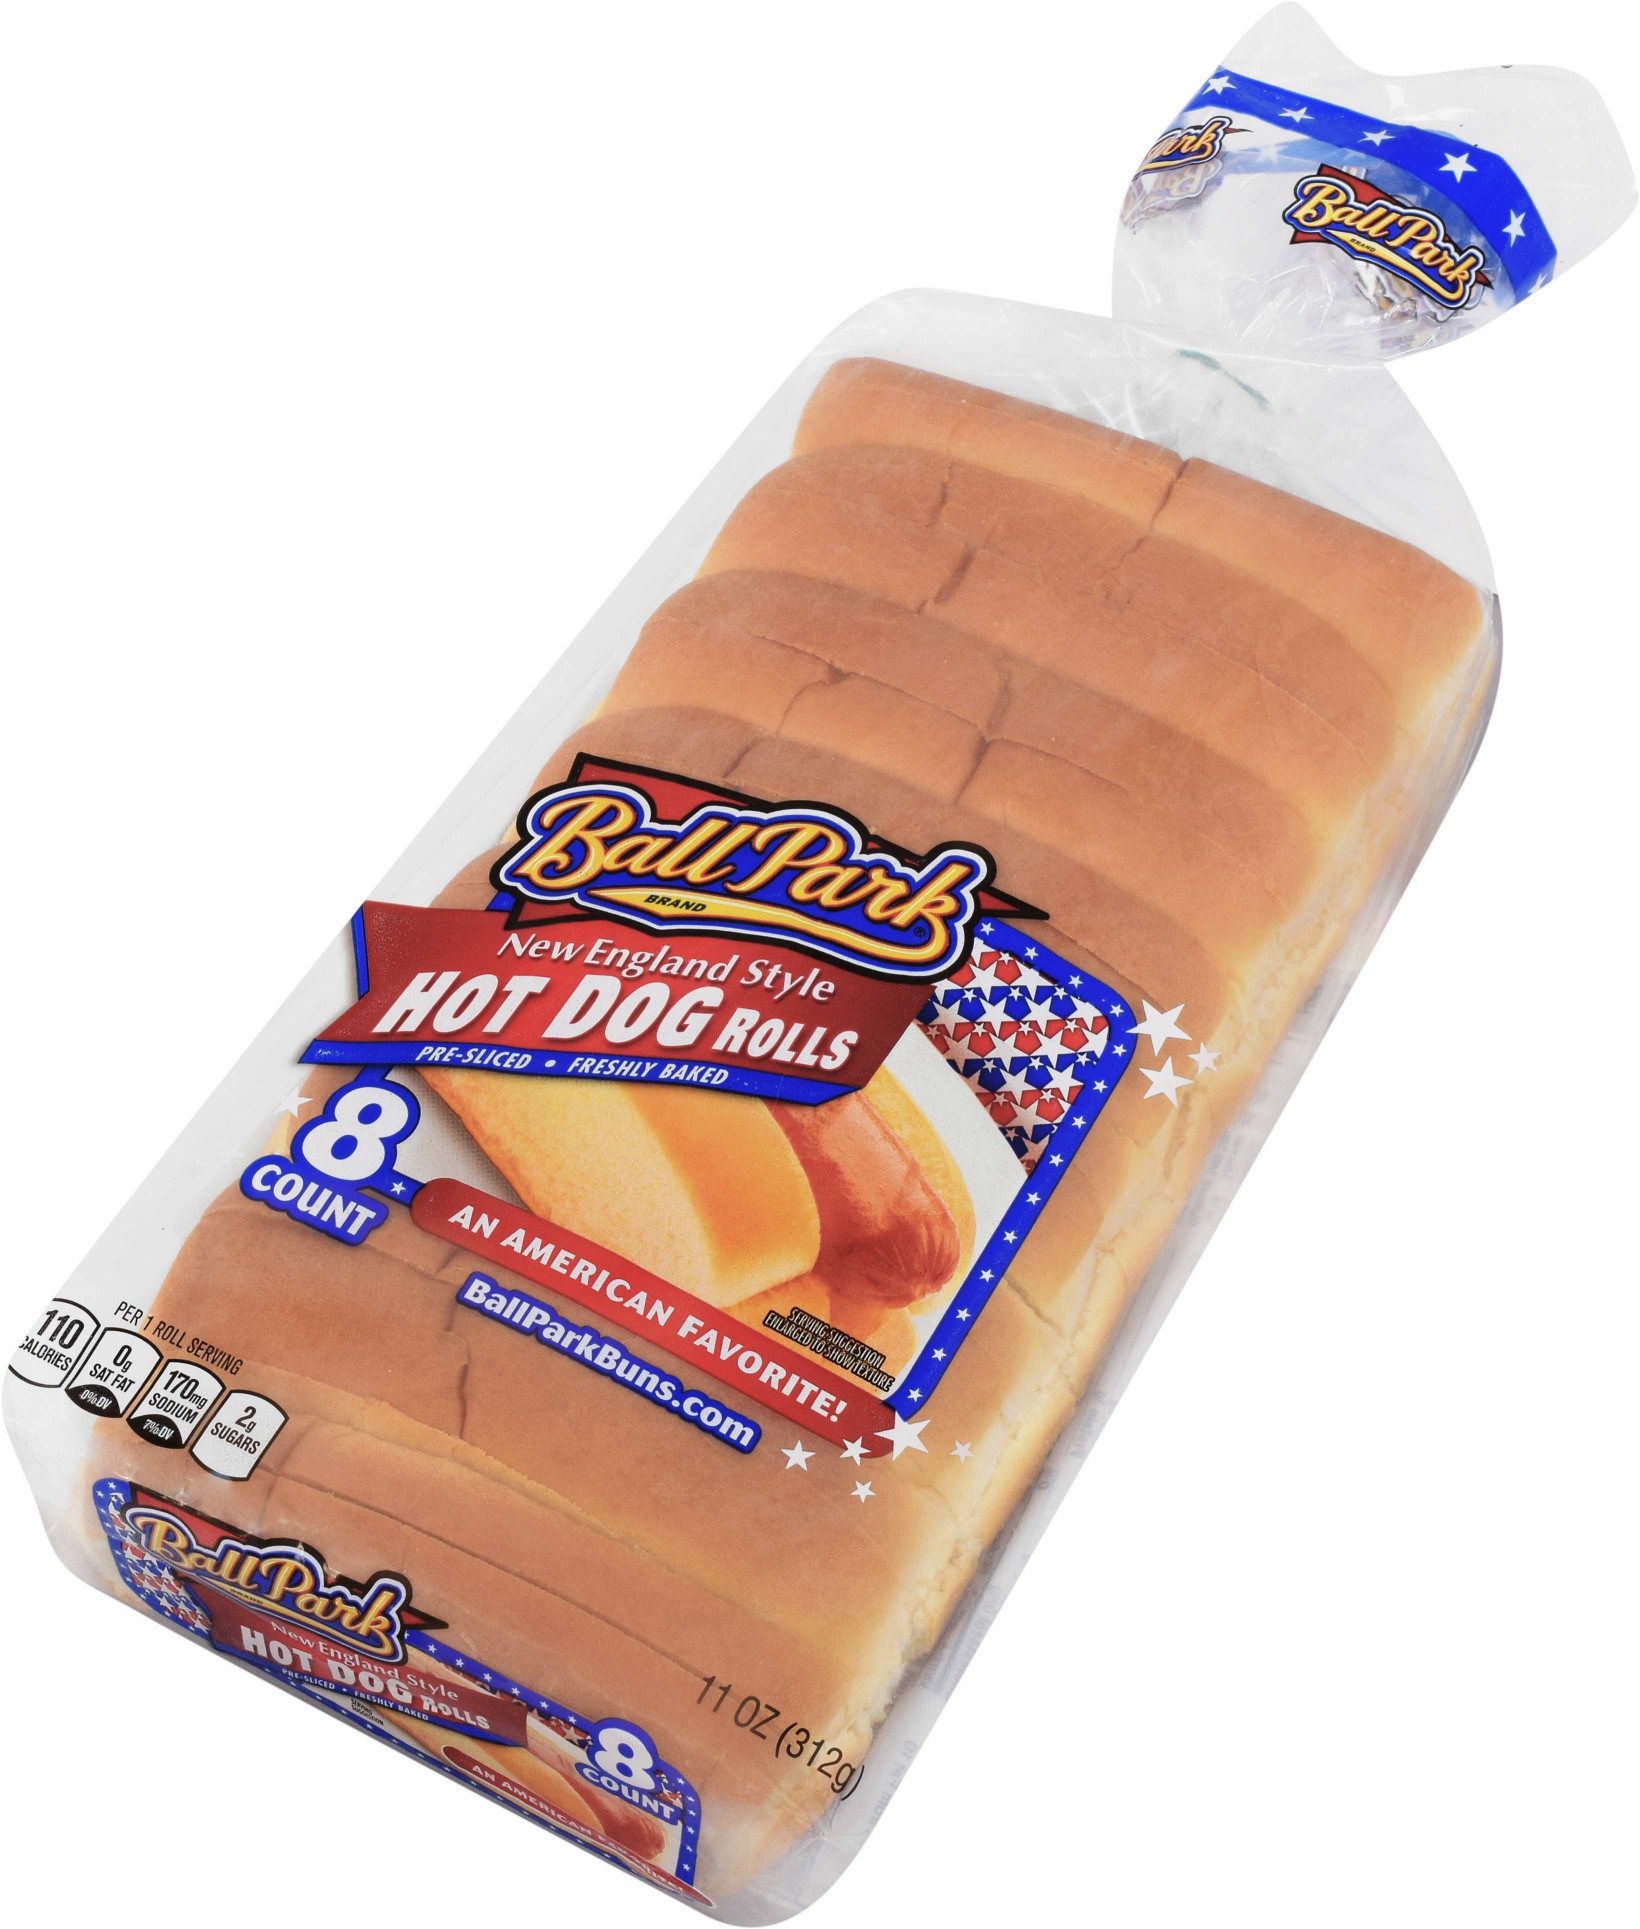 Ball Park New England Style Hot Dog Rolls 8 Count 11 Oz   Walmart.com